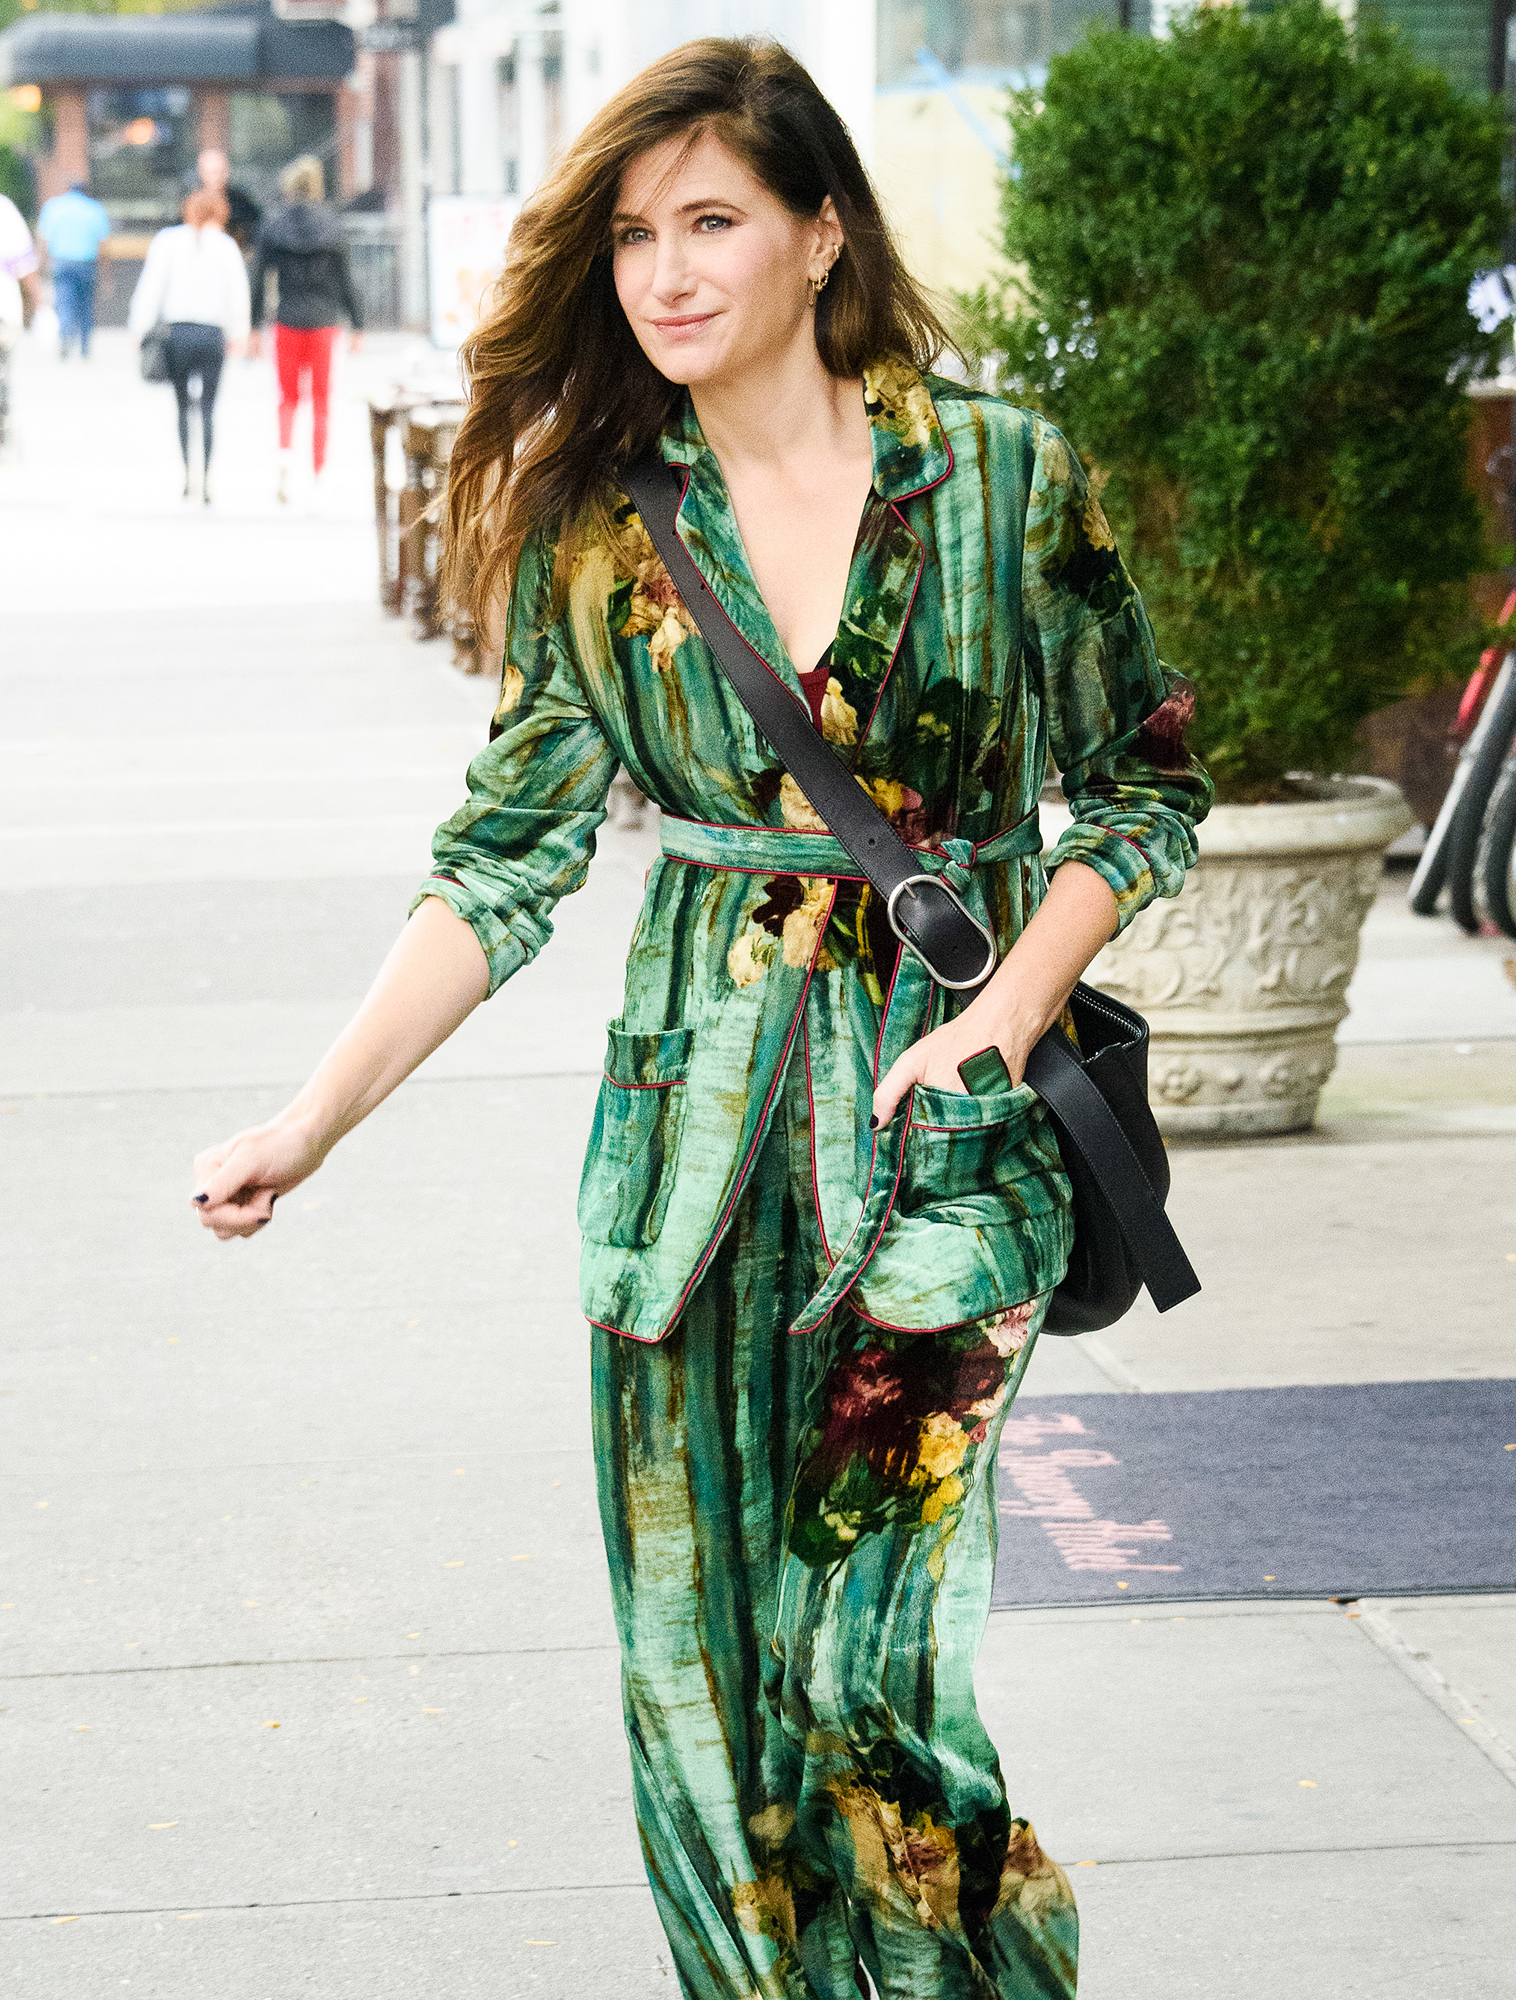 Kathryn Hahn spotted out and about in New York